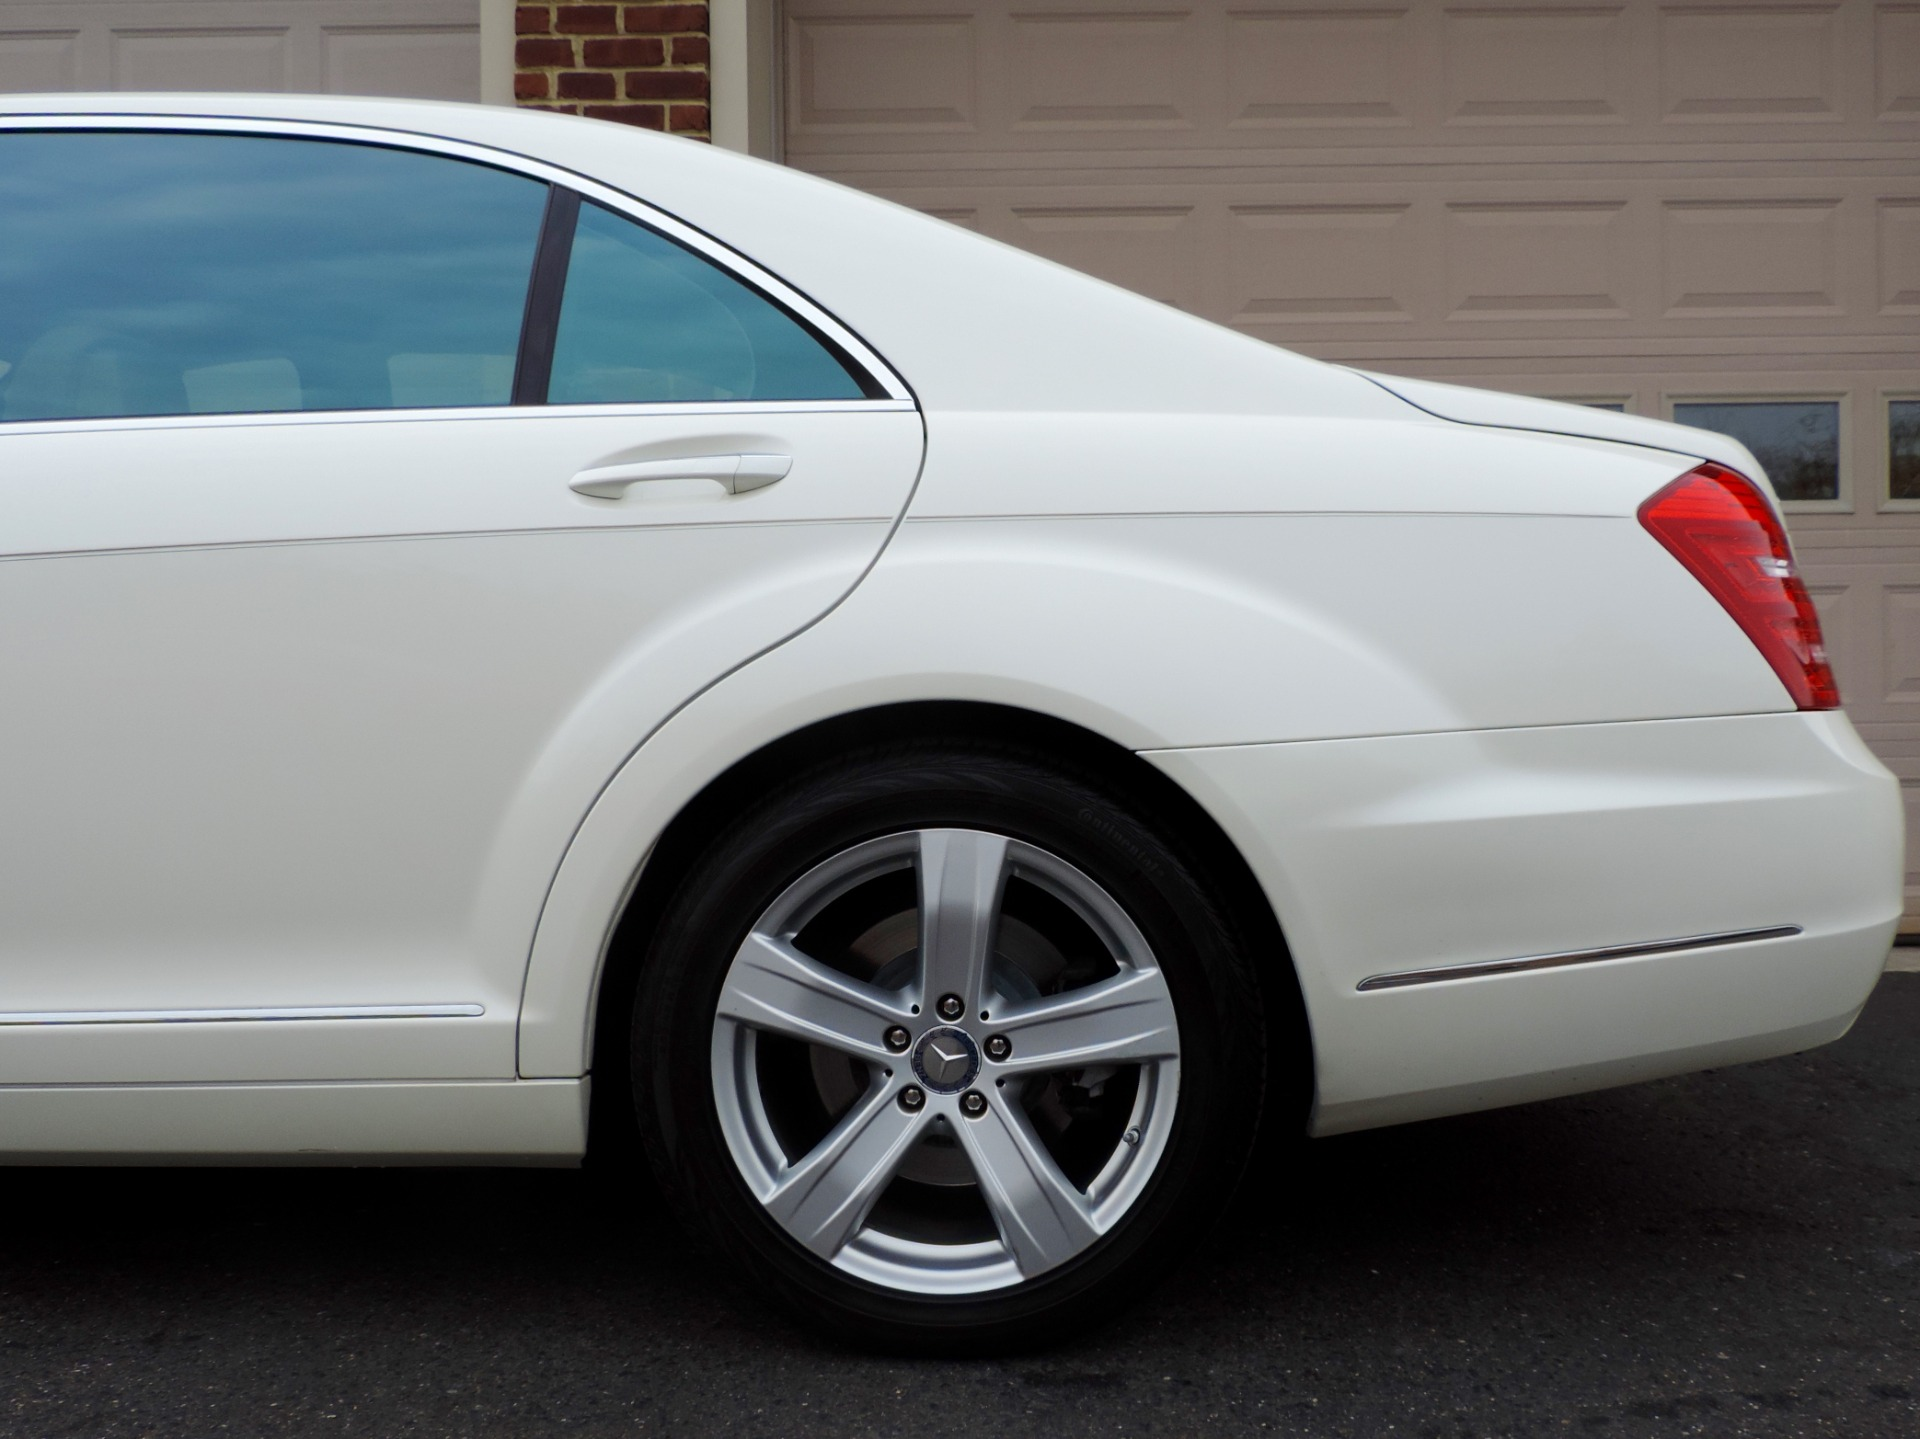 2011 mercedes benz s class s 550 4matic stock 378611 for for 2011 mercedes benz s class s550 4matic sedan